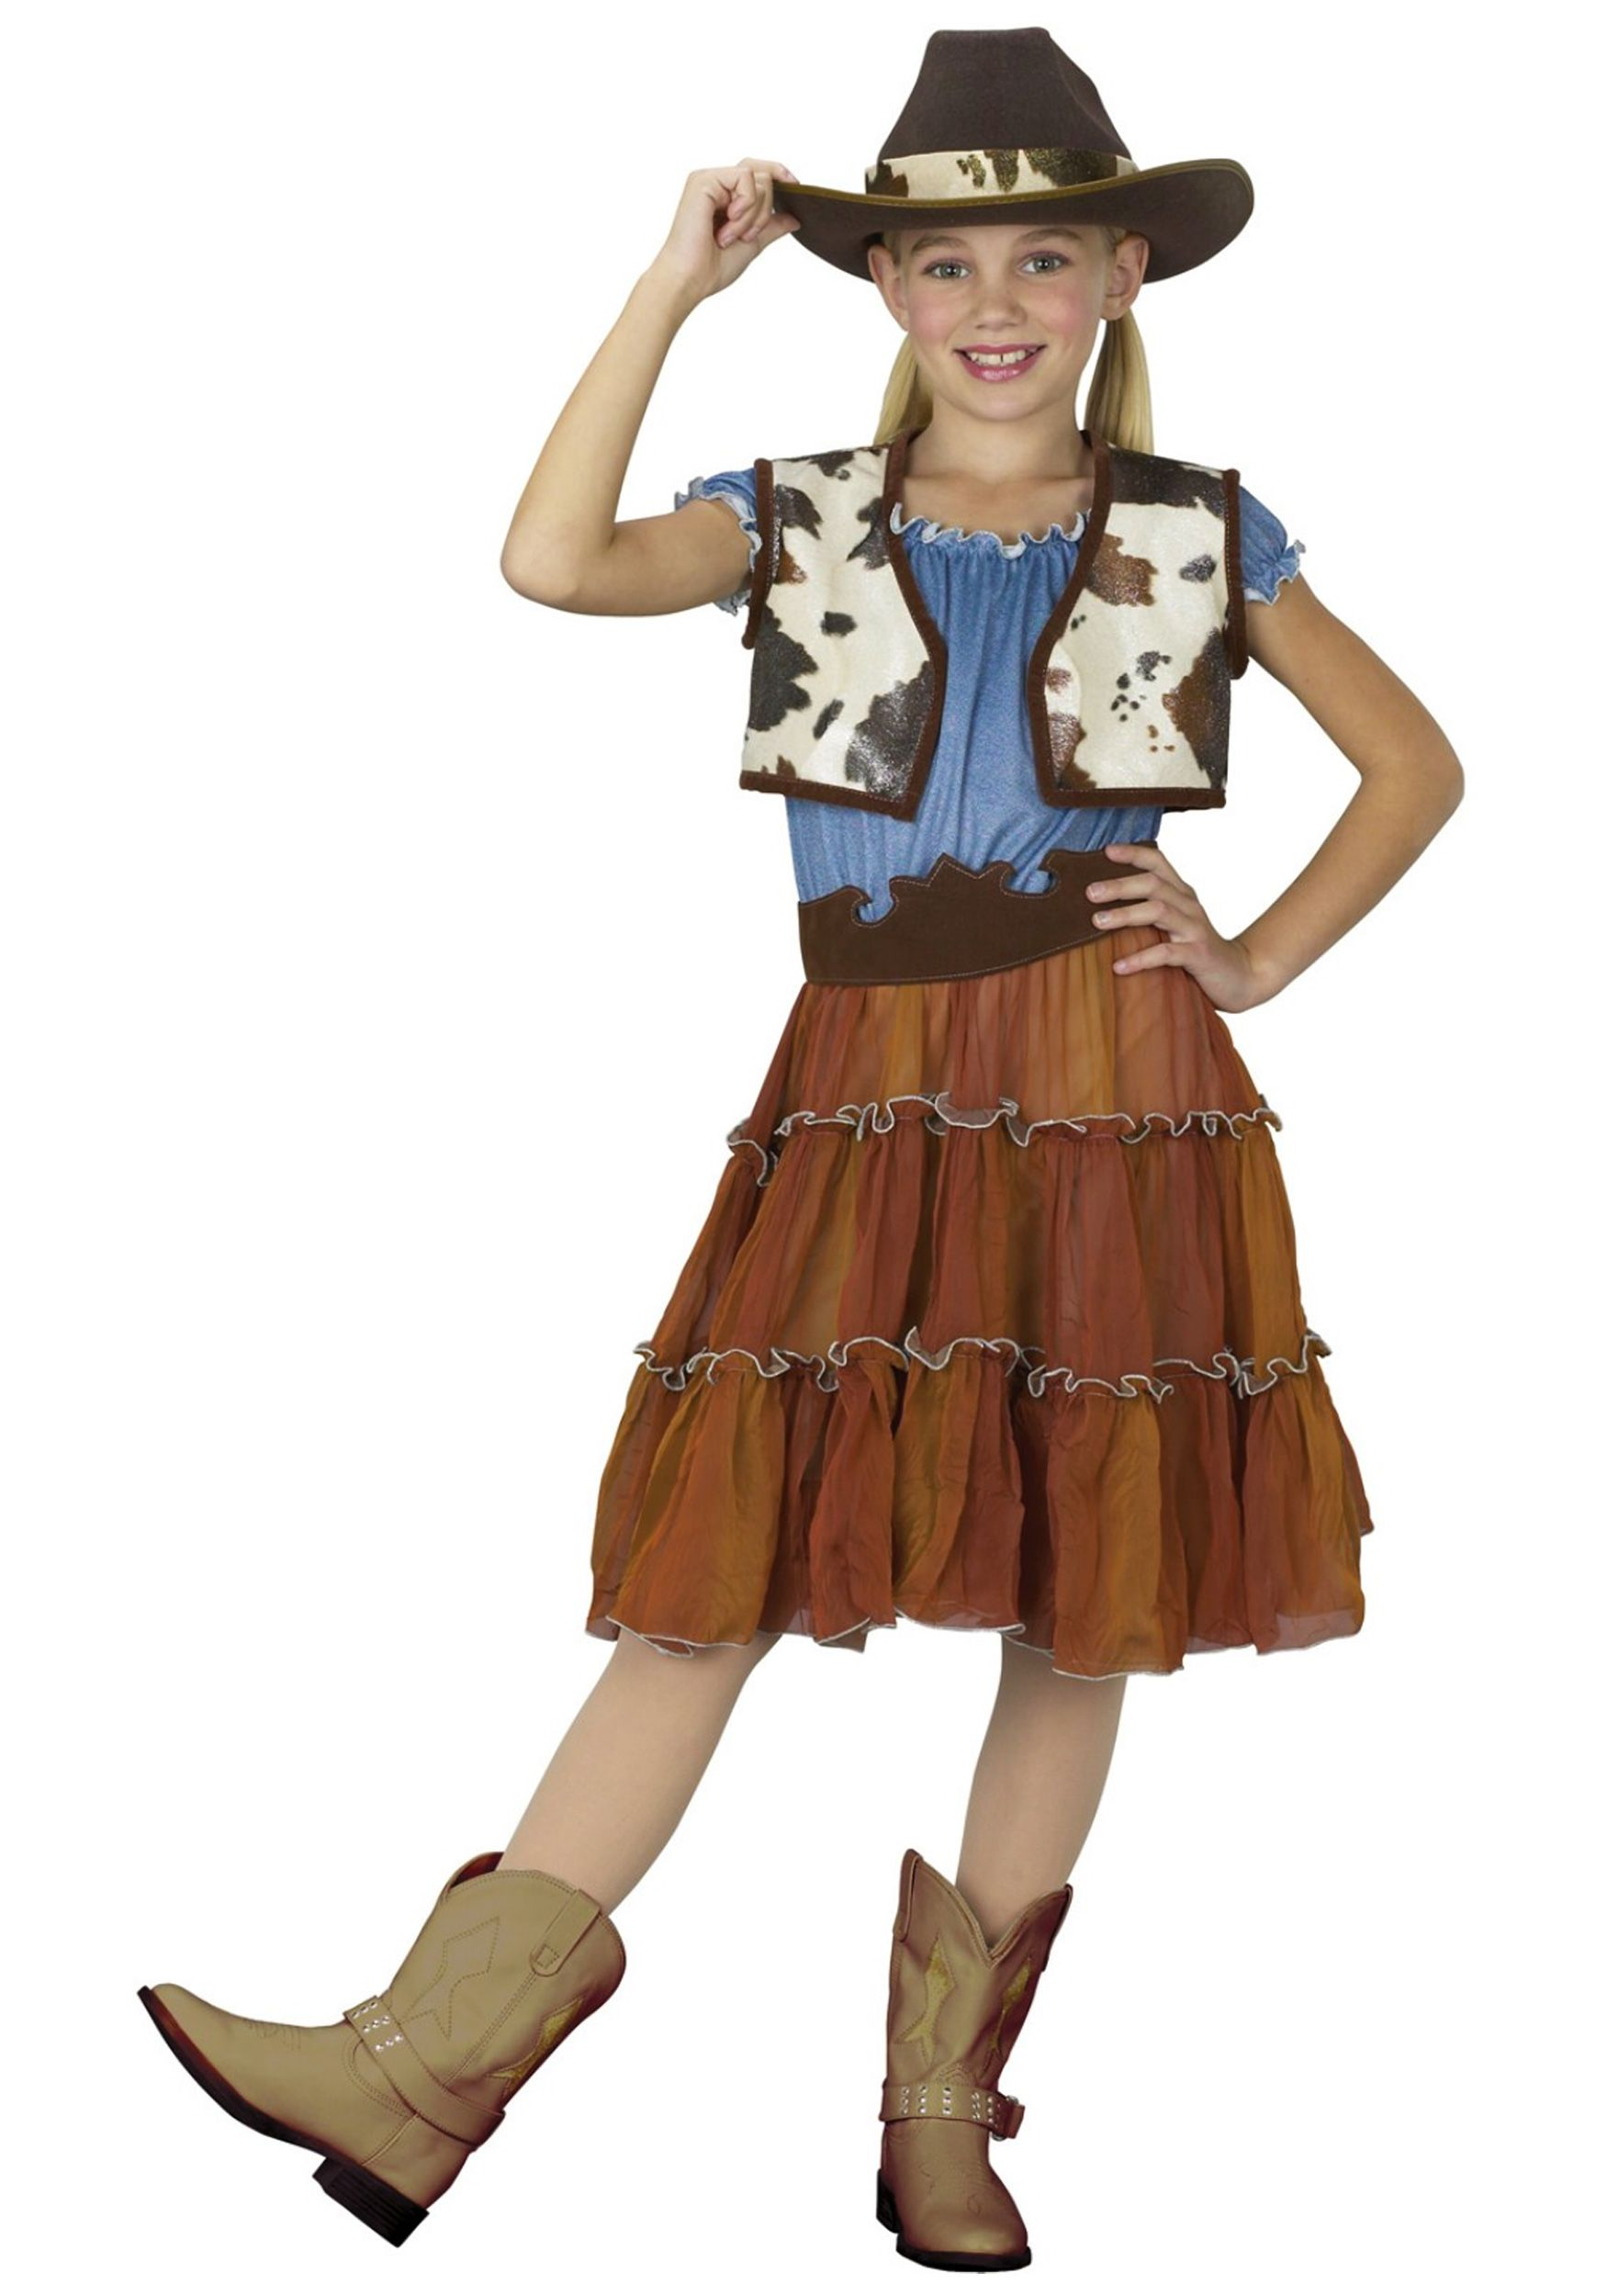 Cowgirl halloween costumes for little girls sammy bedtime pins image of cowgirl halloween costume ideas are you looking for halloween costume ideas the image below is cowgirl halloween costume ideas solutioingenieria Gallery